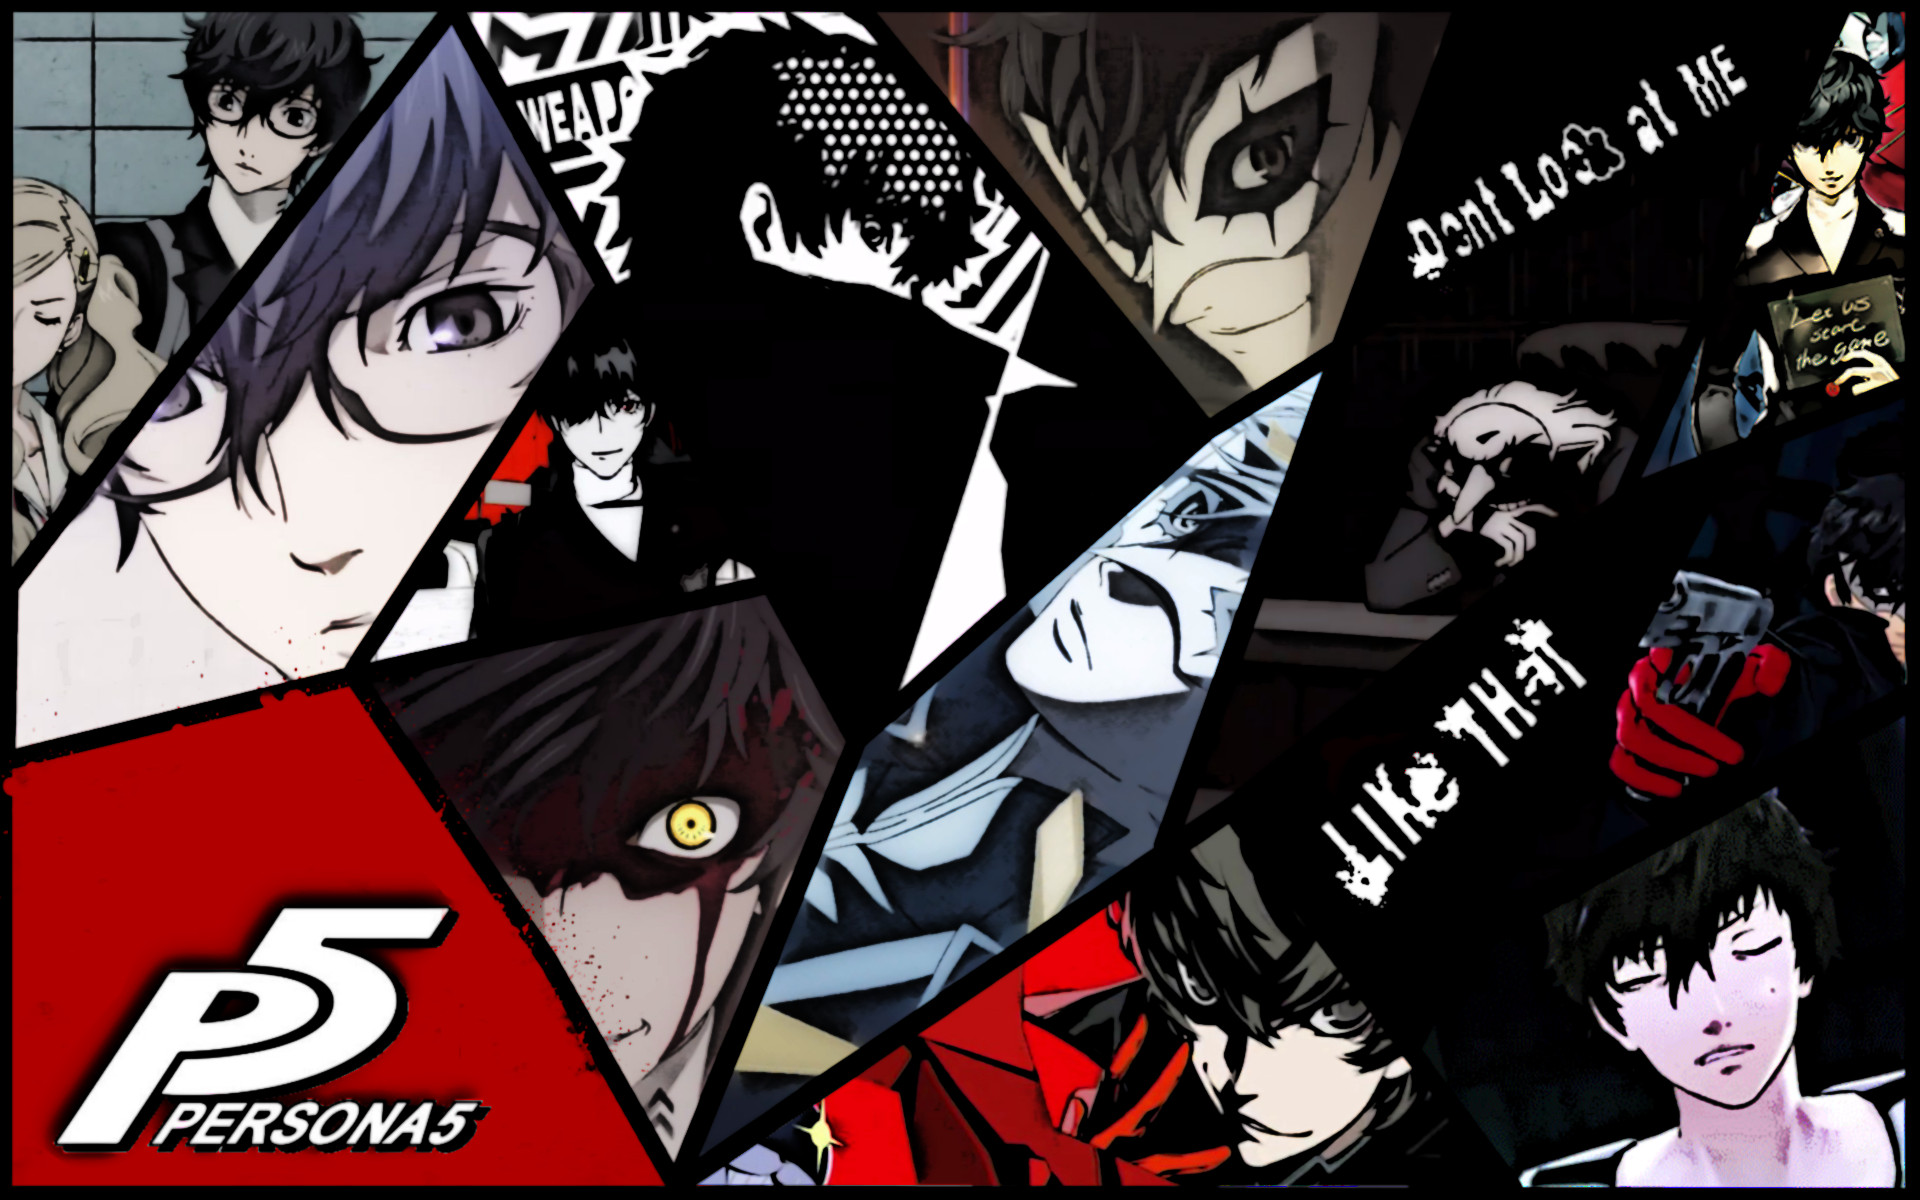 49 Persona 5 Wallpapers On Wallpapersafari